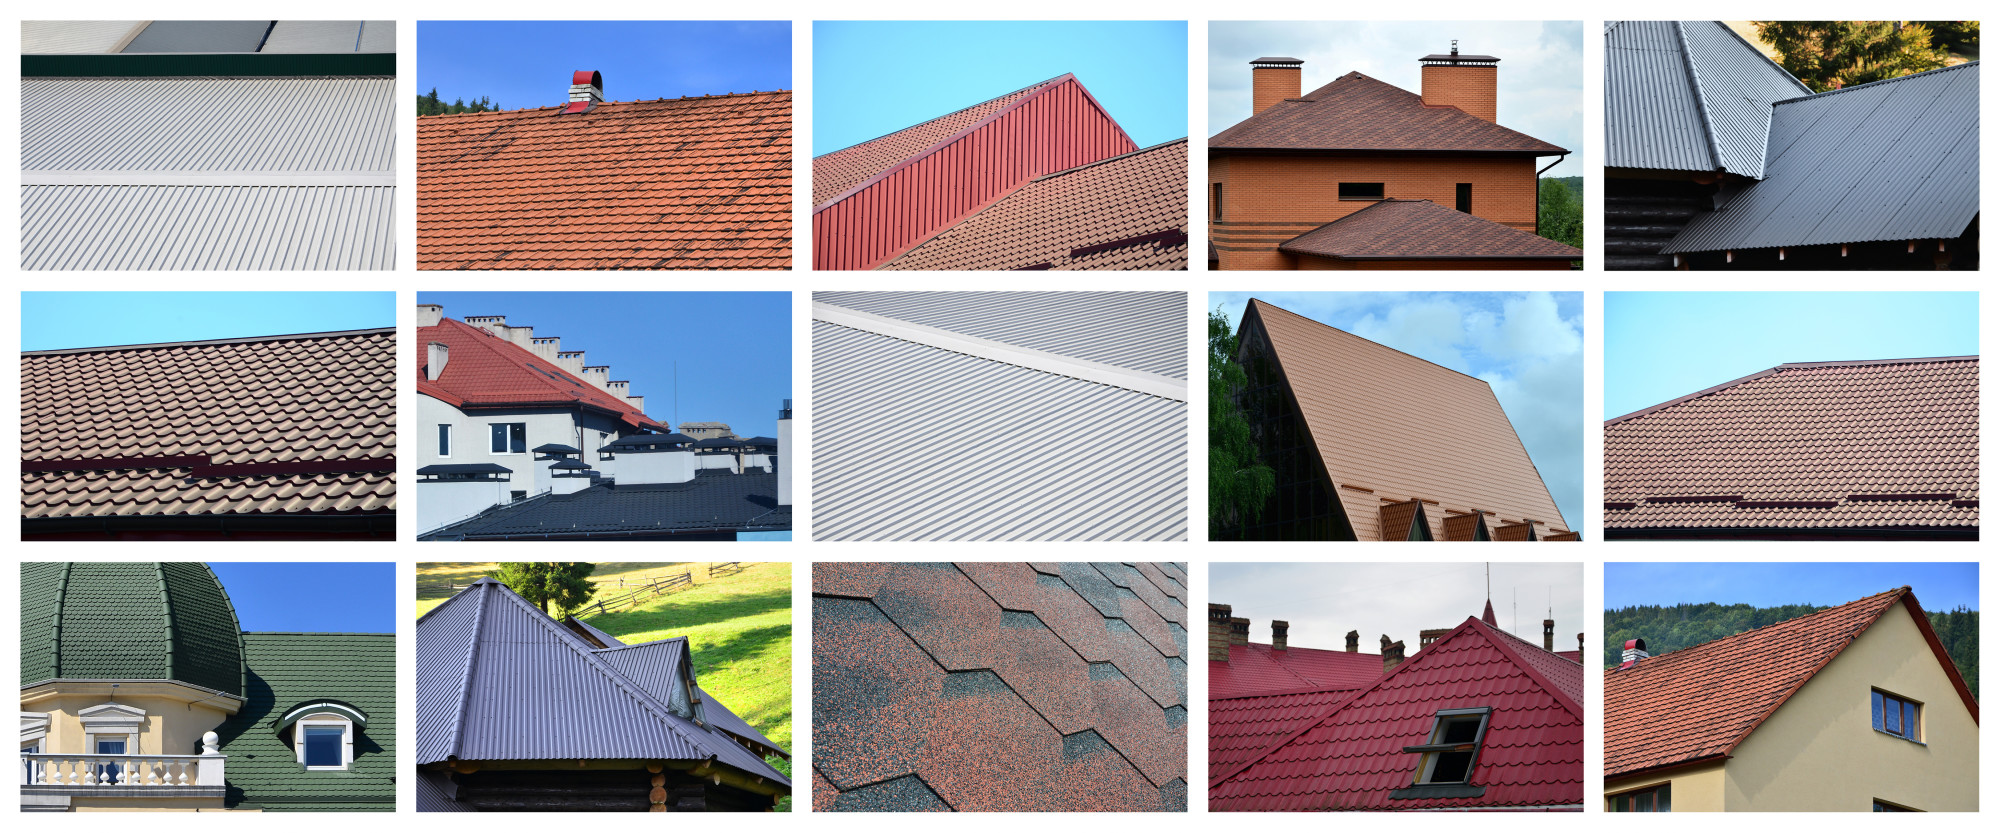 7 Types of Roofing Materials to Consider When Renovating Your House